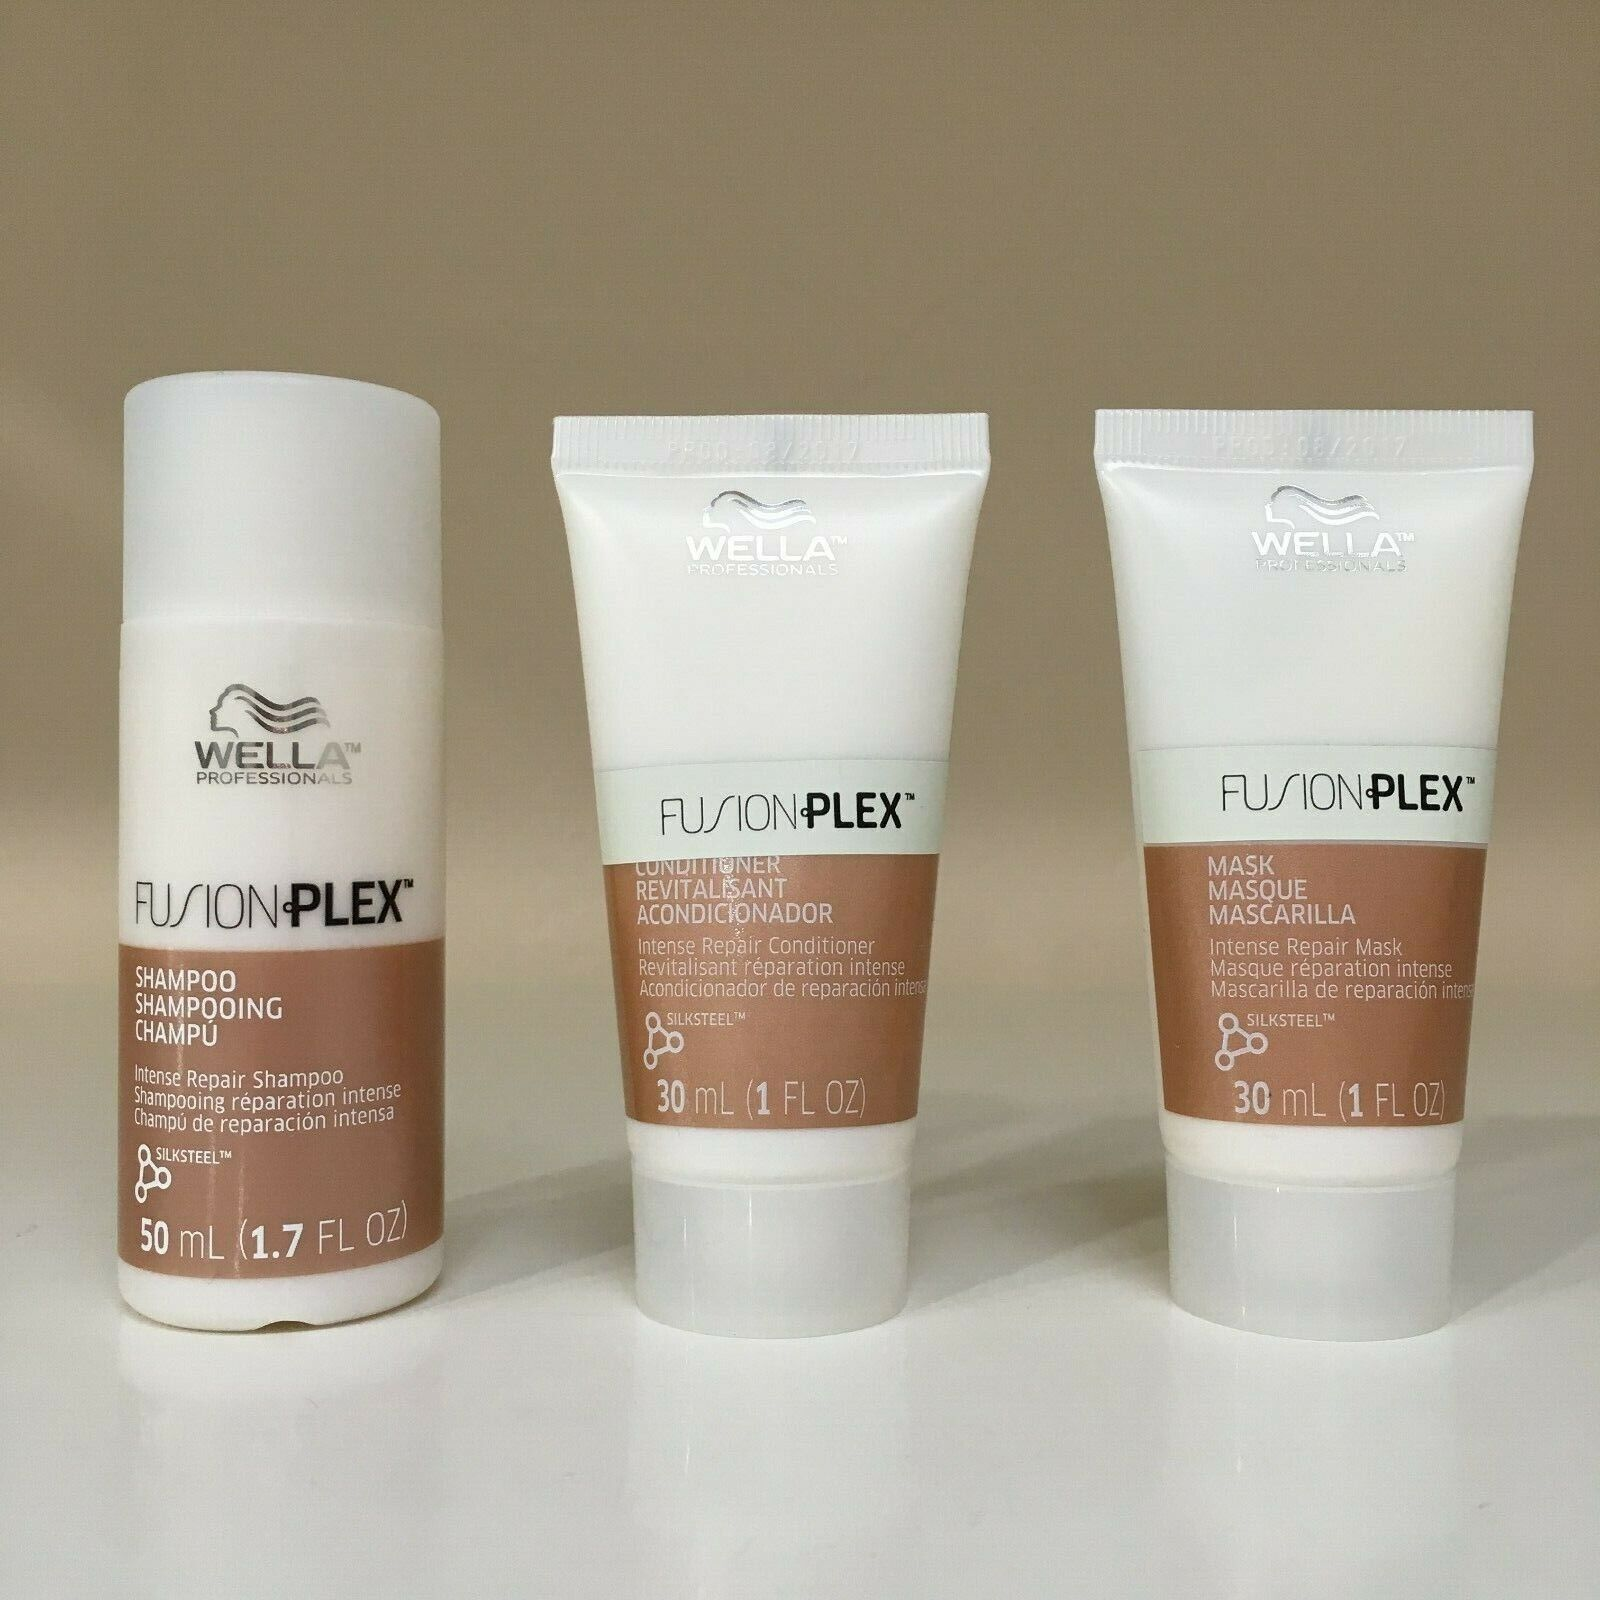 Wella FUSIONPLEX Shampoo, Conditioner, Mask Travel Size TRIO